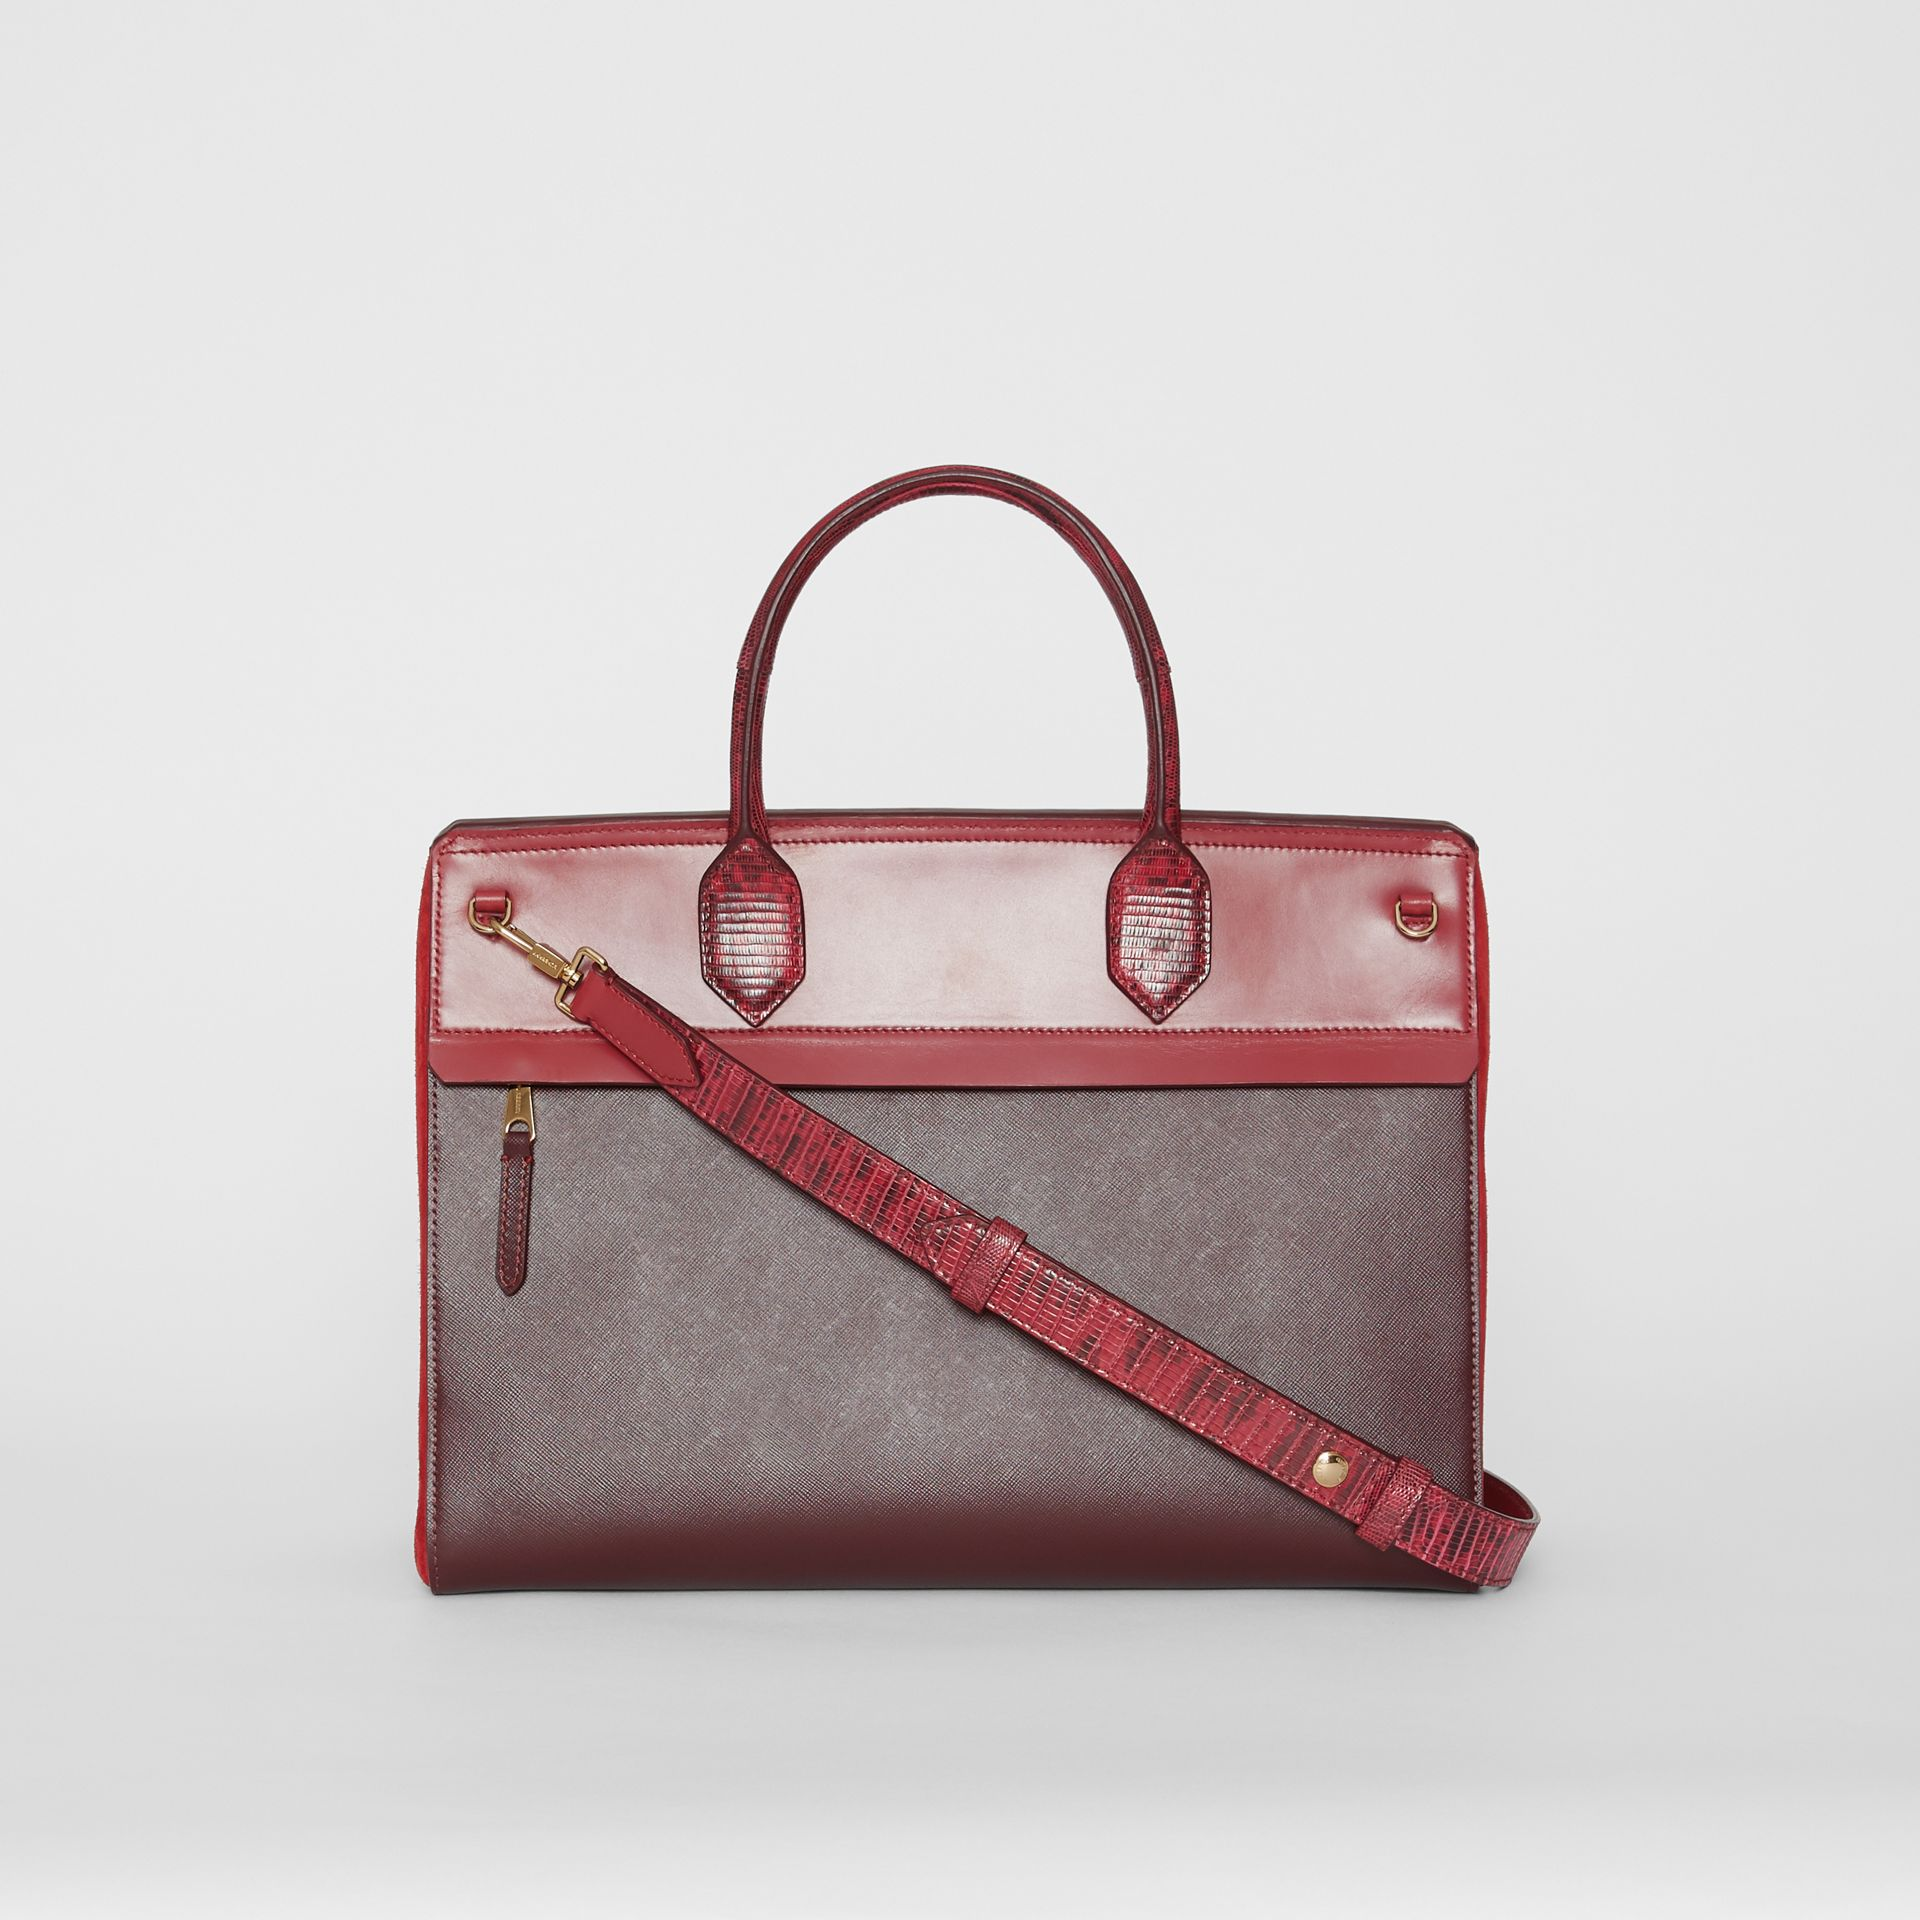 Medium Leather and Suede Elizabeth Bag in Crimson - Women | Burberry - gallery image 7